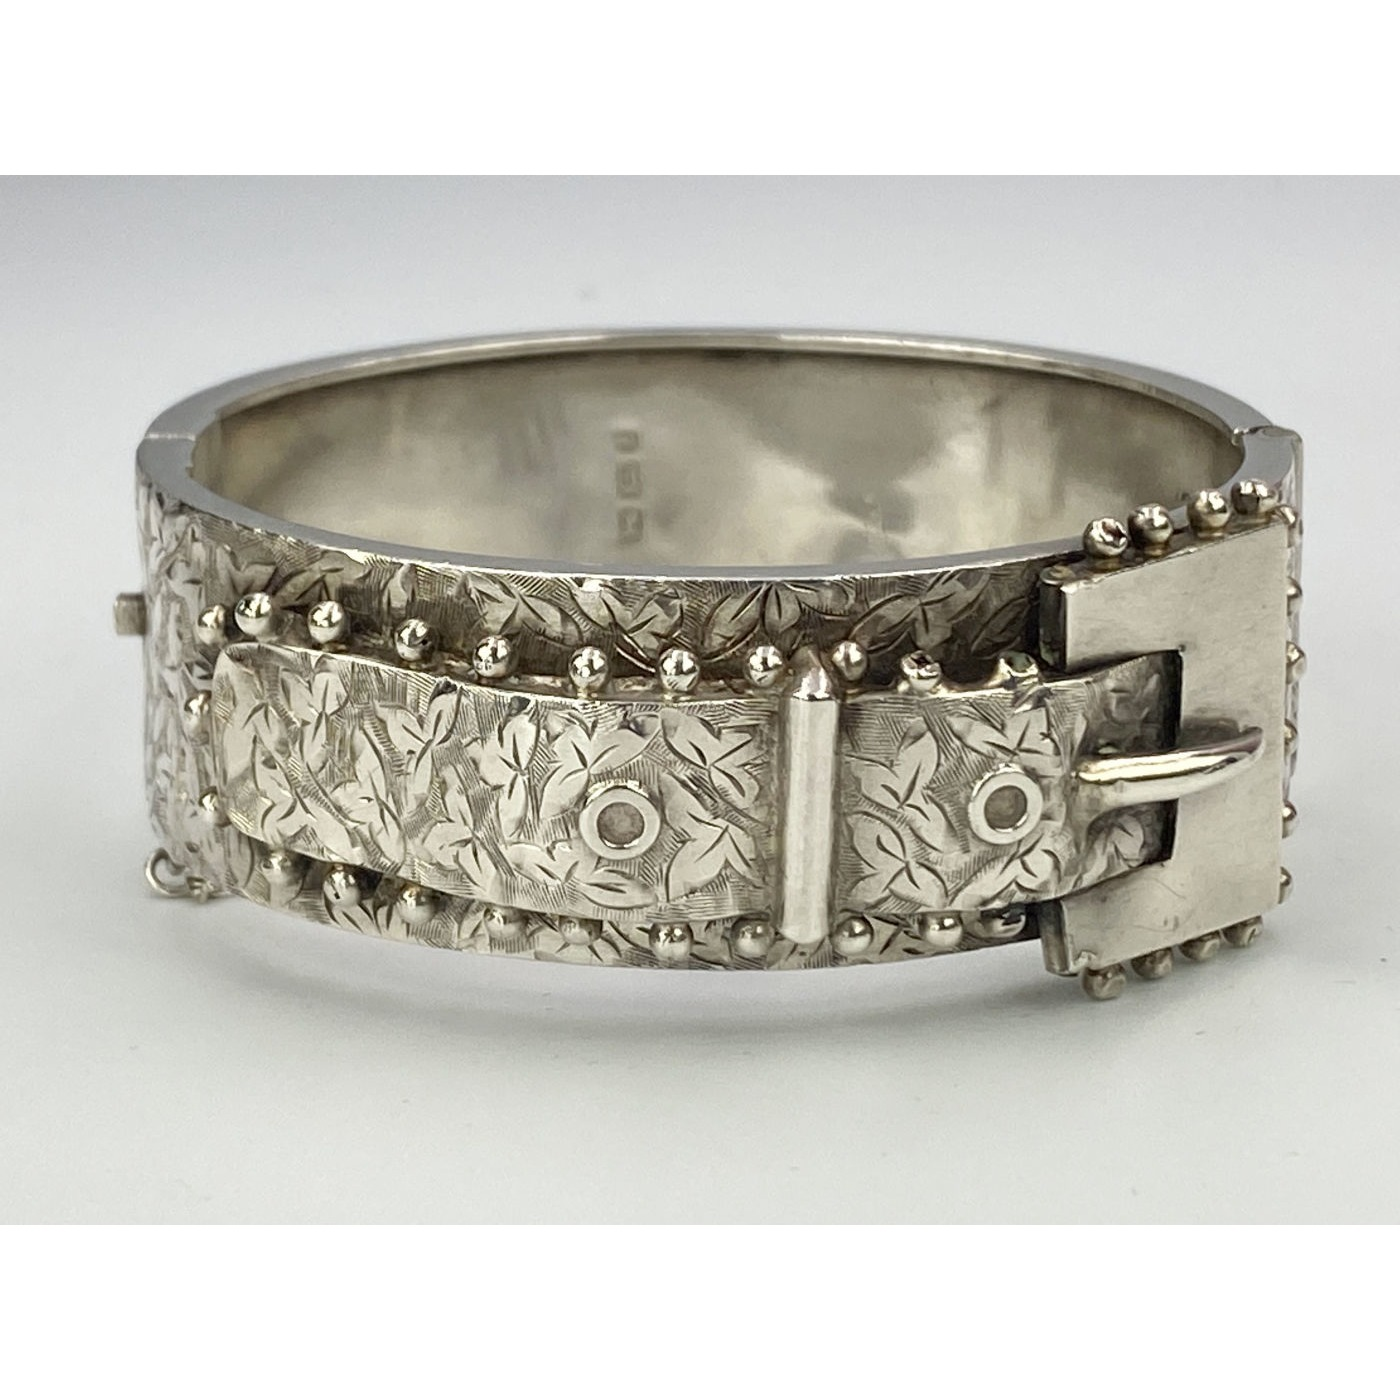 Beautiful Square Buckle and Ivy English Buckle Bangle